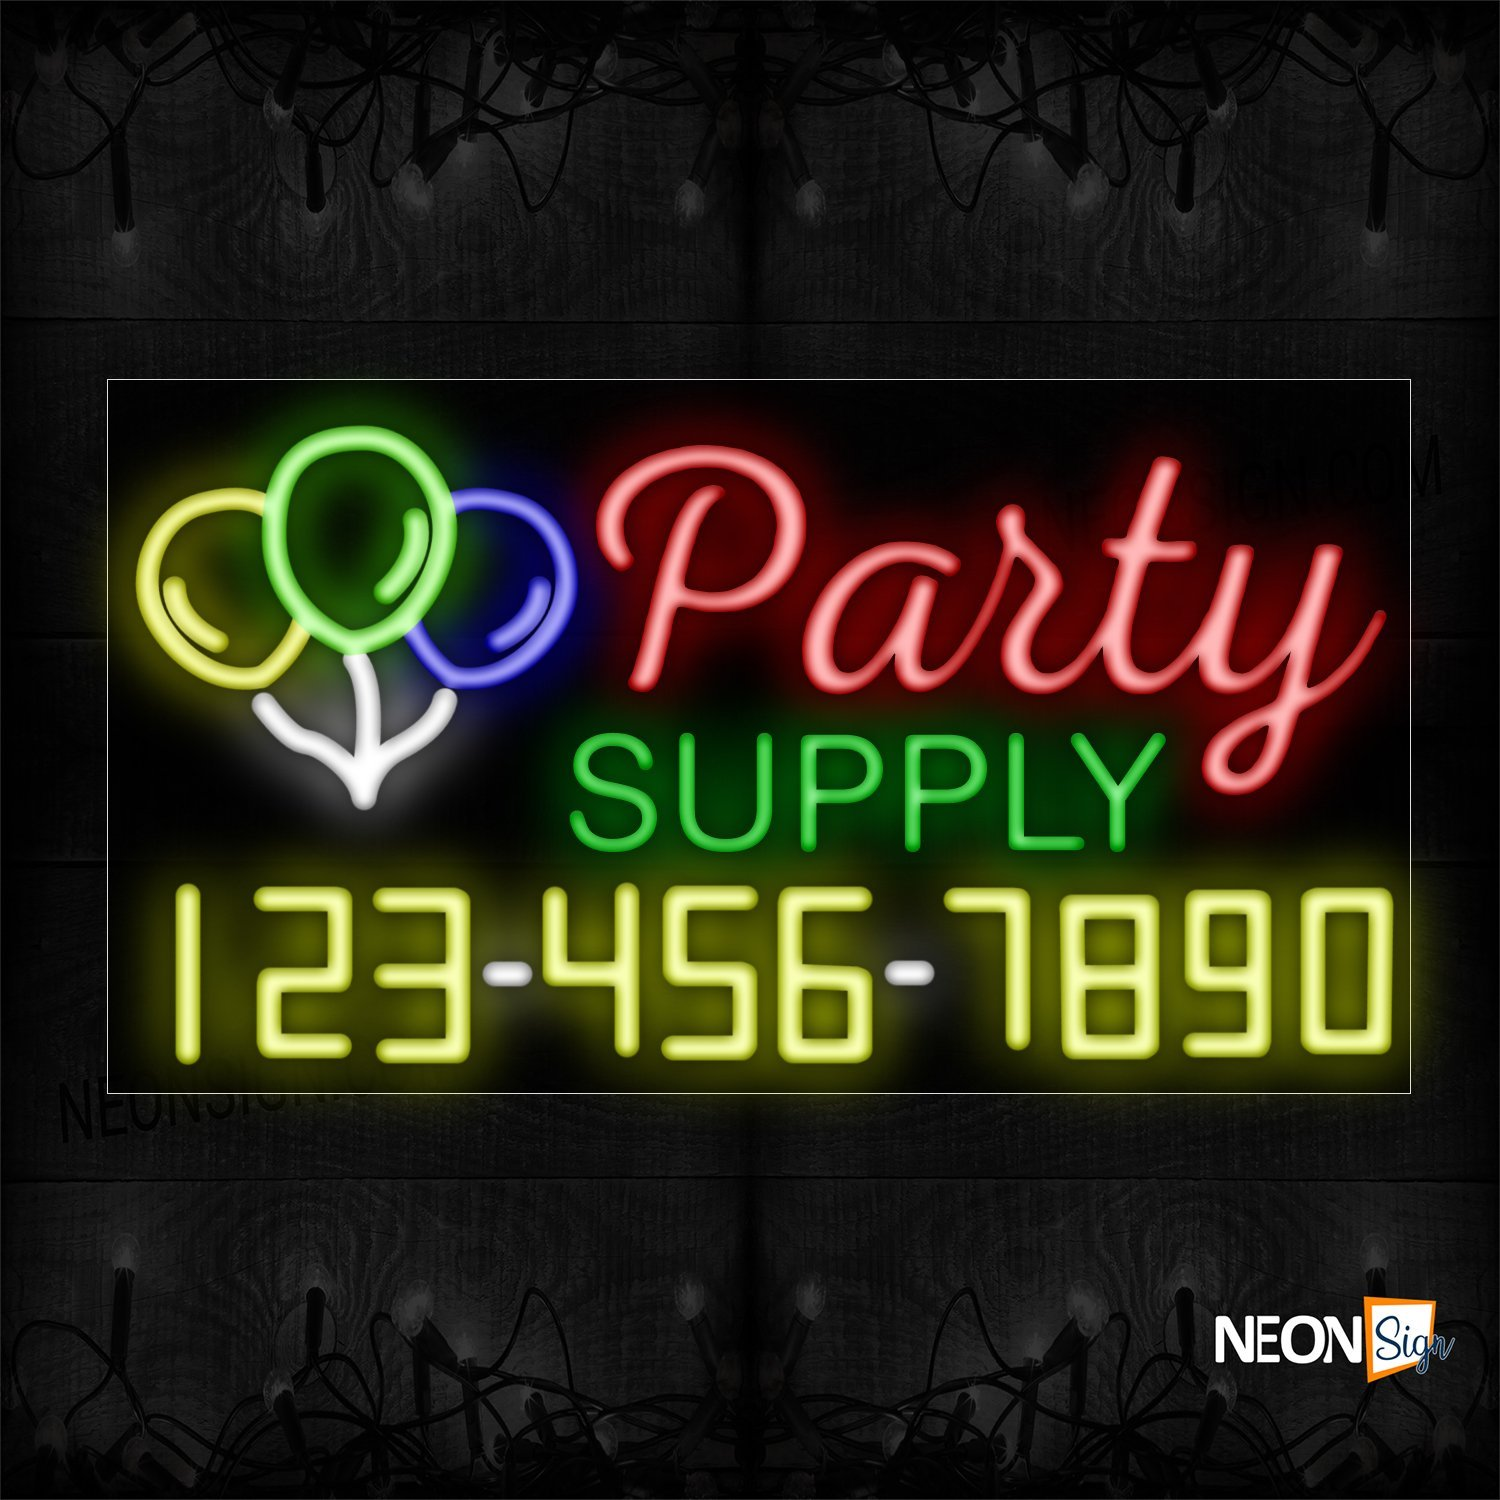 Image of 15090 Party Supply And Phone Number With Logo Neon Sign_20x37 Black Backing